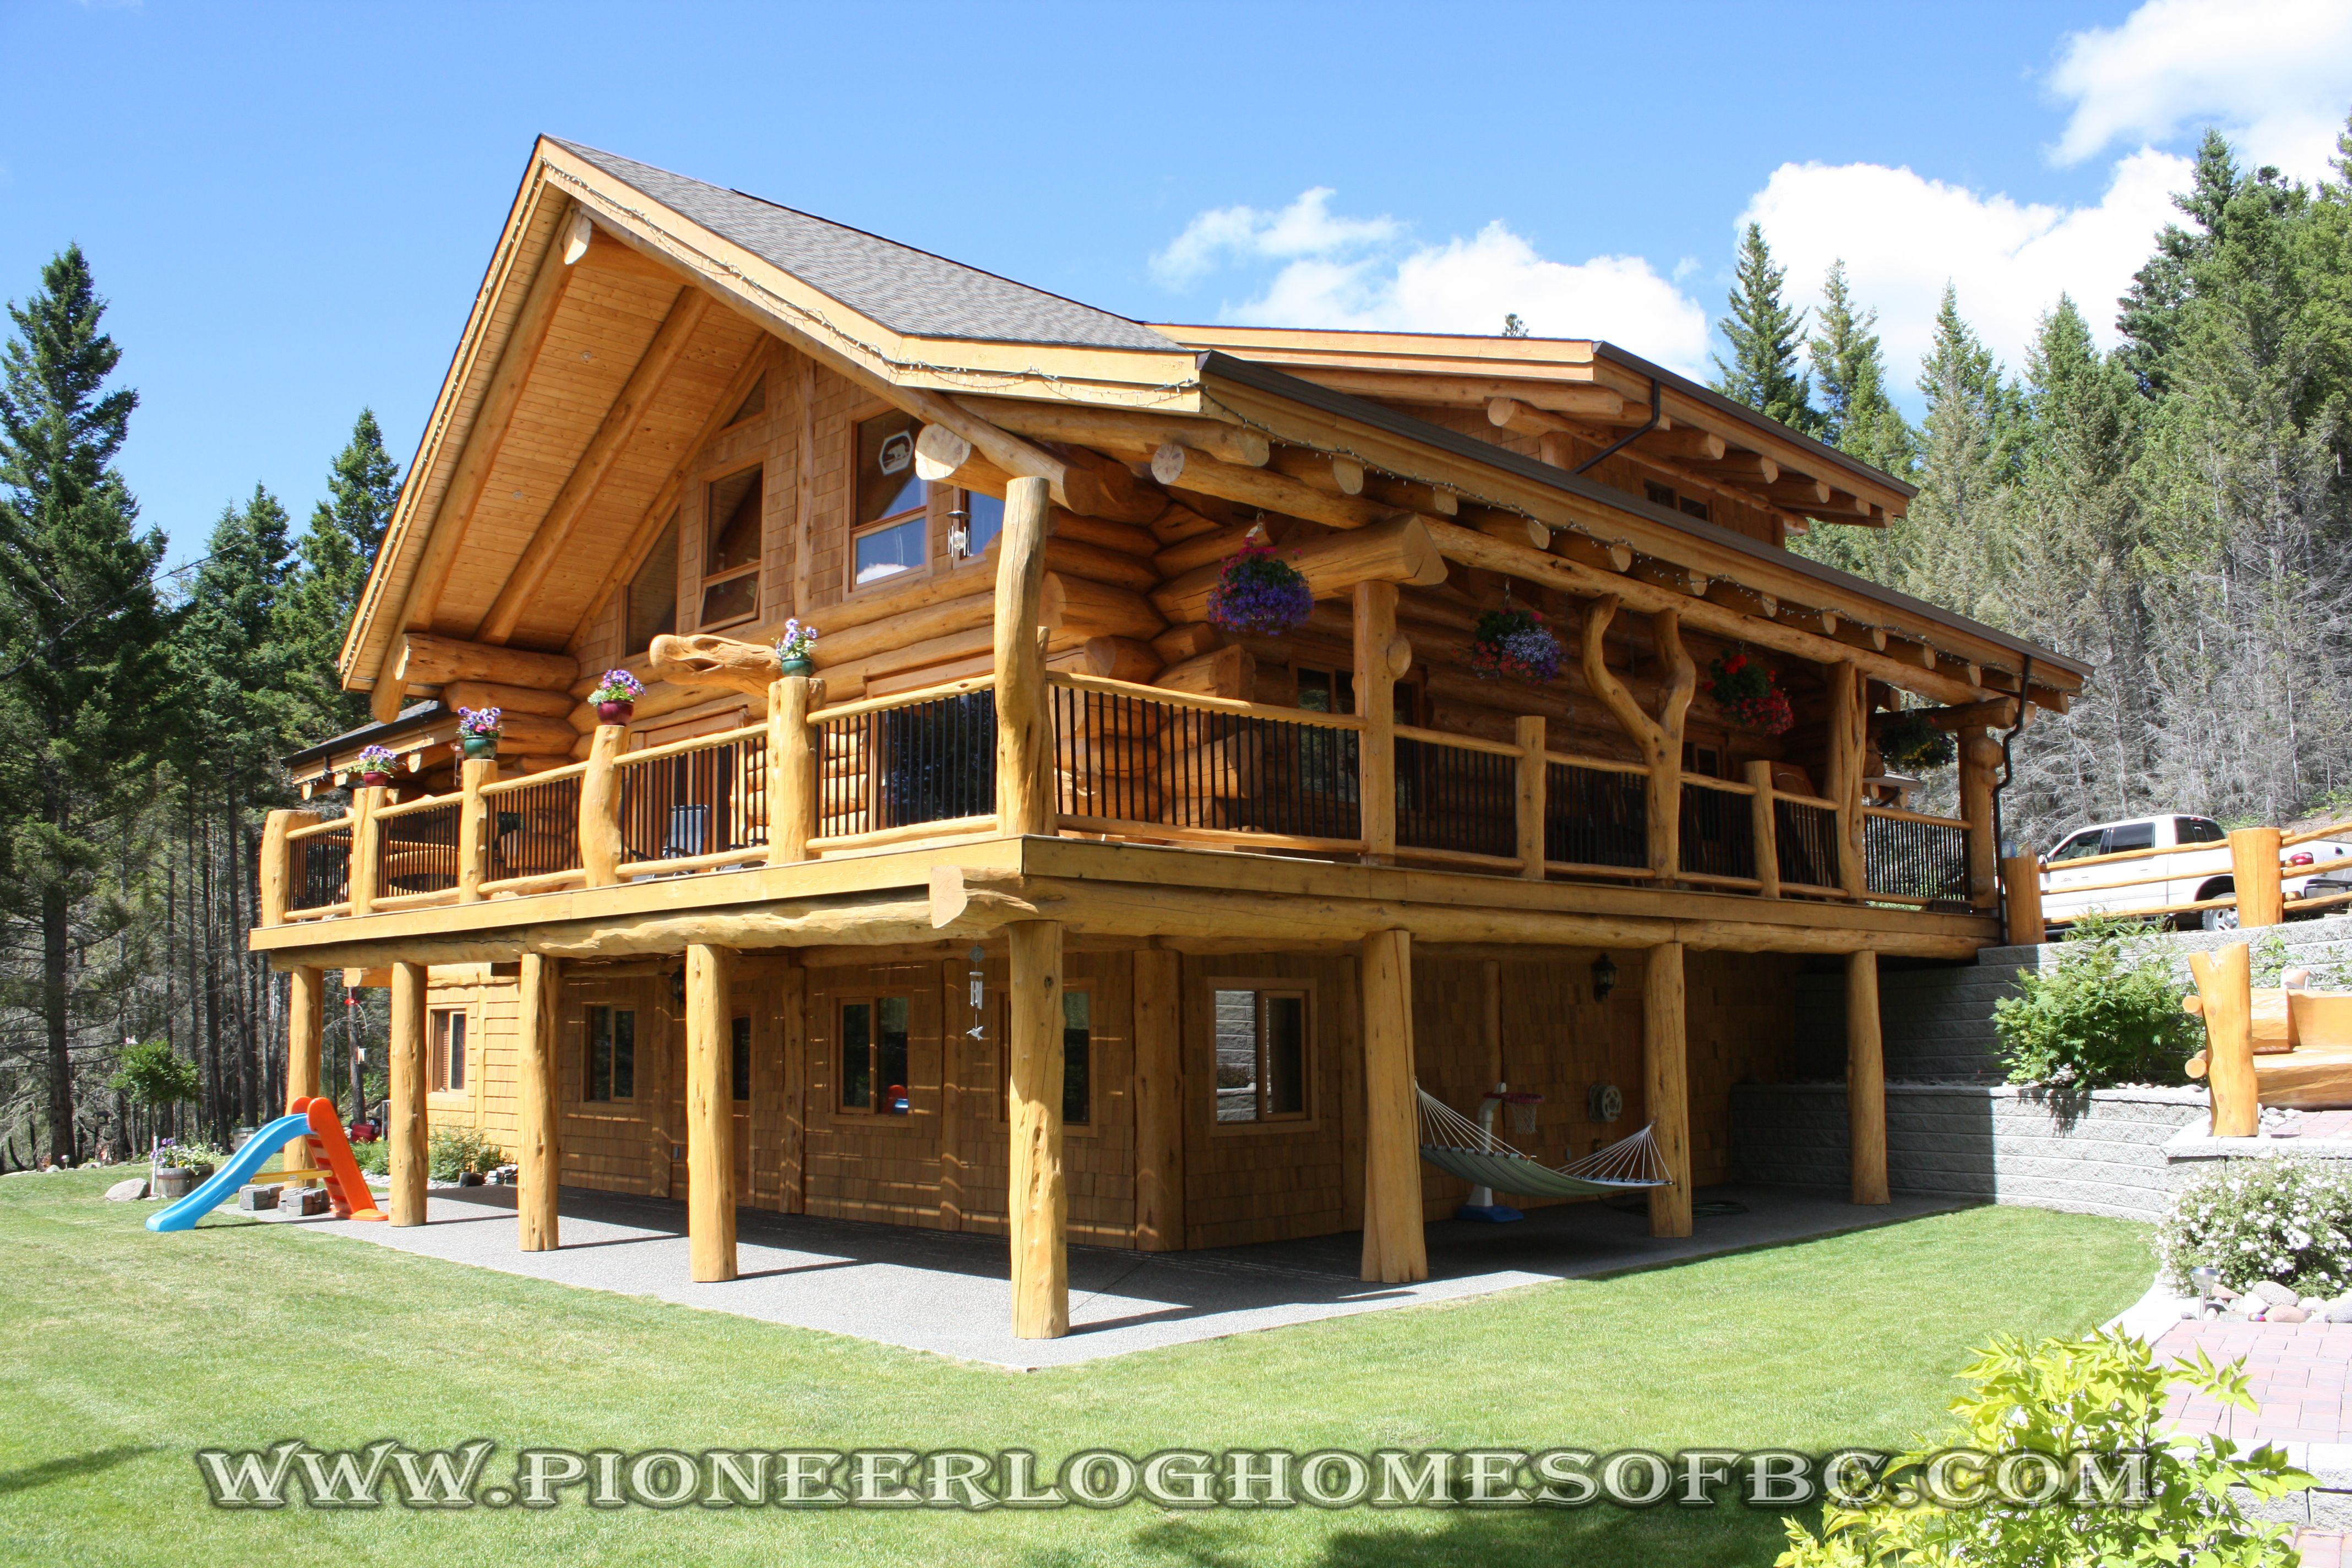 Custom Log Homes Picture Gallery Log Cabin Homes Pictures Bc Canada Log Homes Log Cabin Homes Log Home Plans